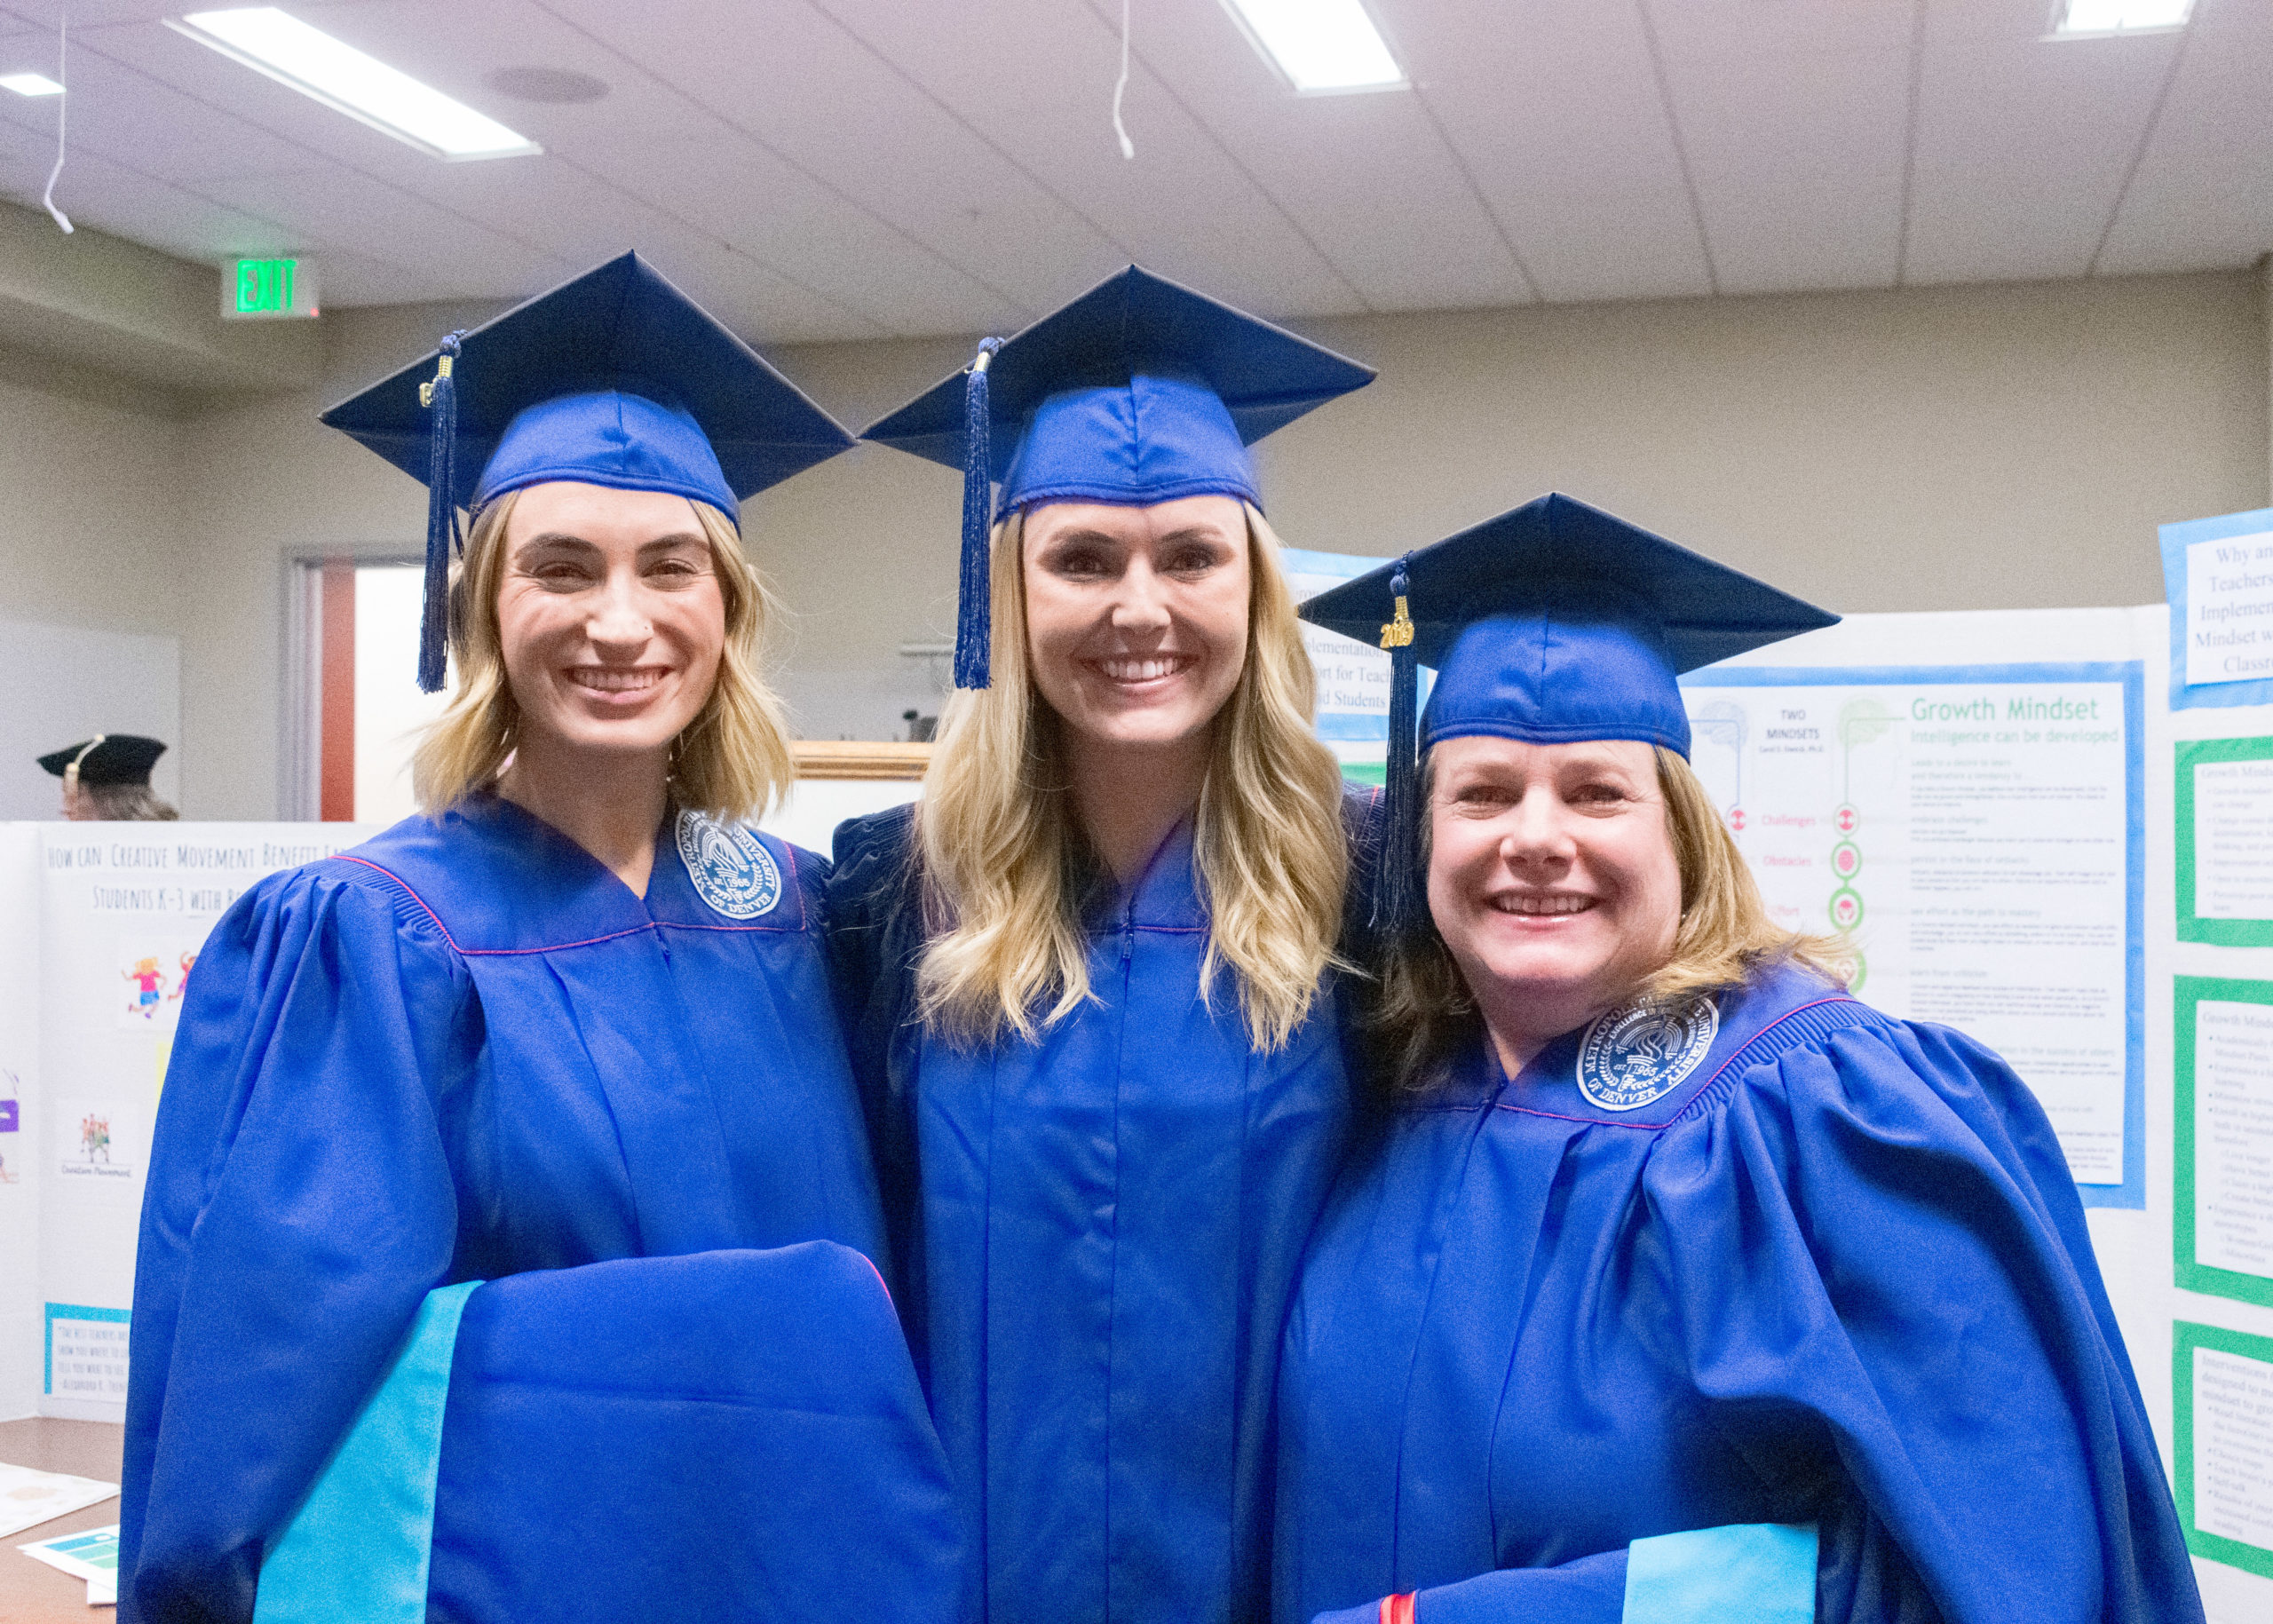 Master's in Education Capstone and Hooding